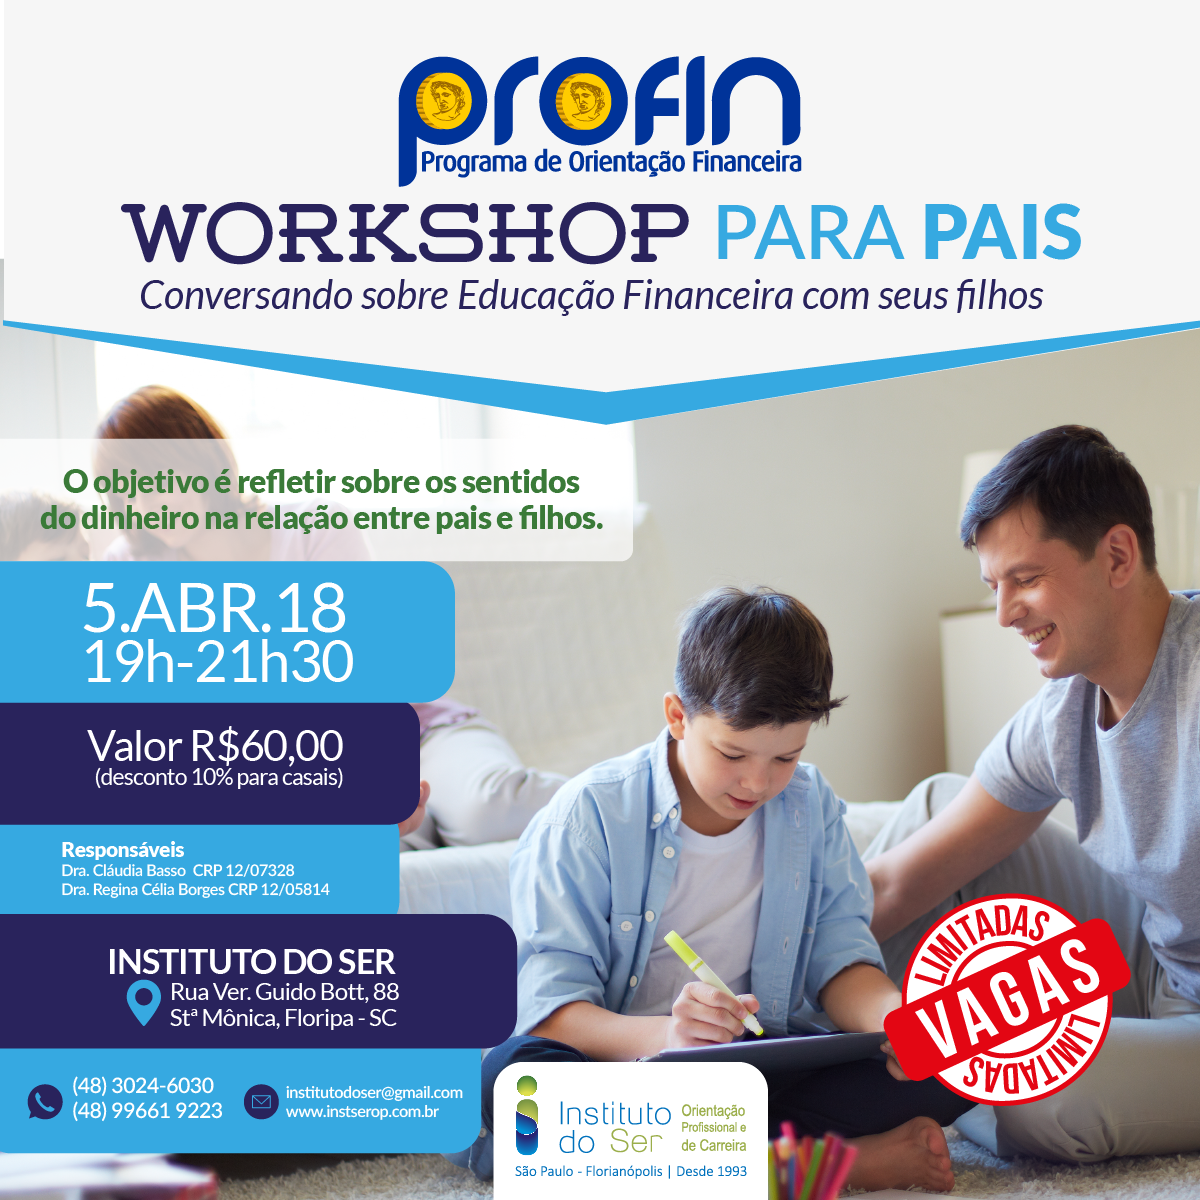 workshop-parapais-post-01-01